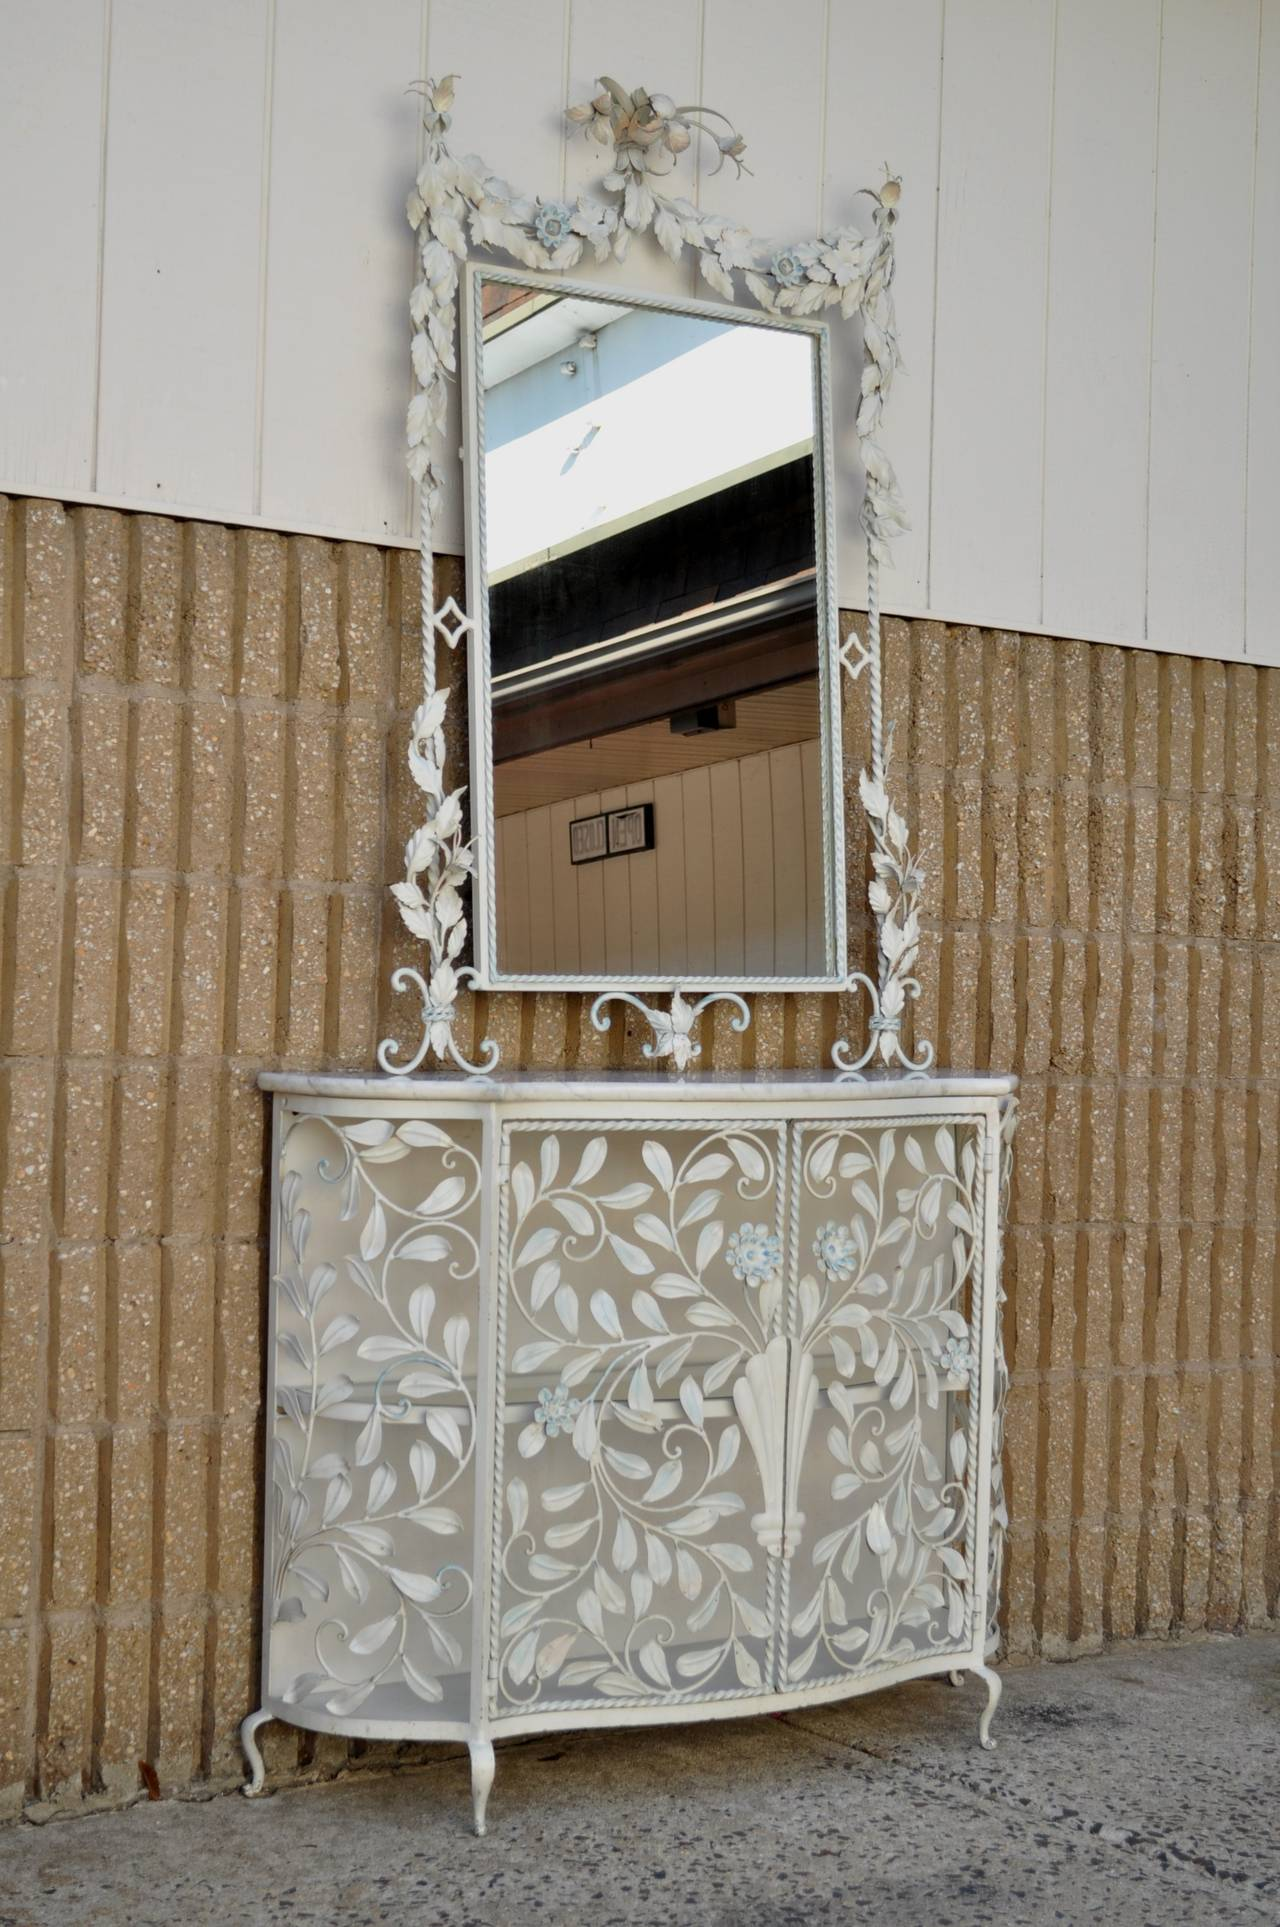 Ornate French Floral Wrought Iron Mirror and Marble Top Console ...